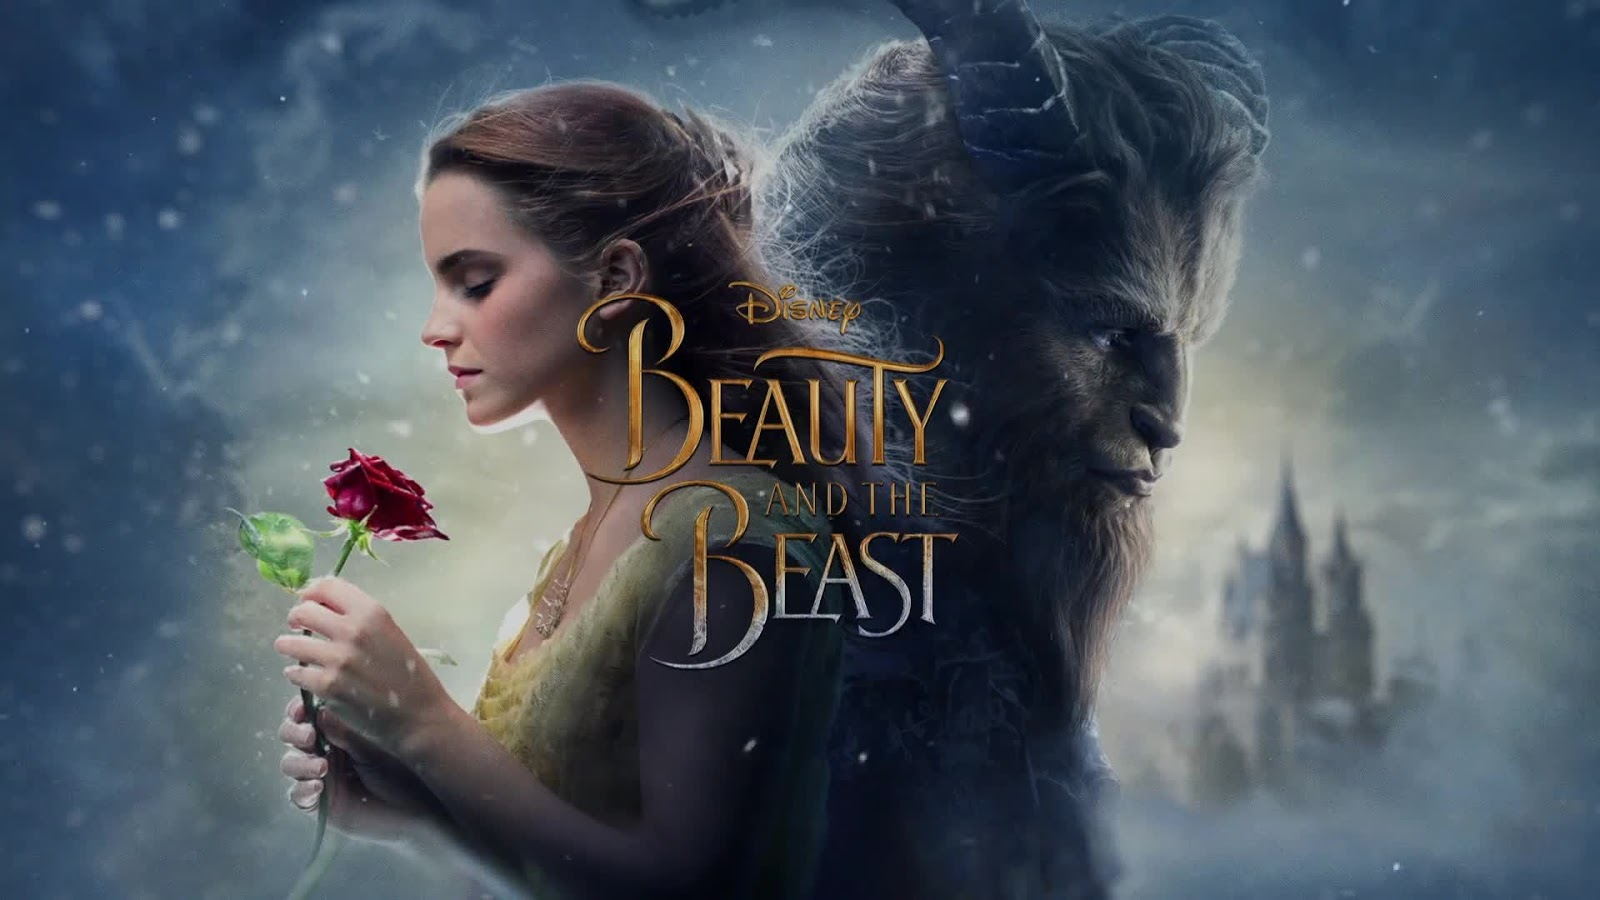 beauty and the beast dual audio 480p bluray download